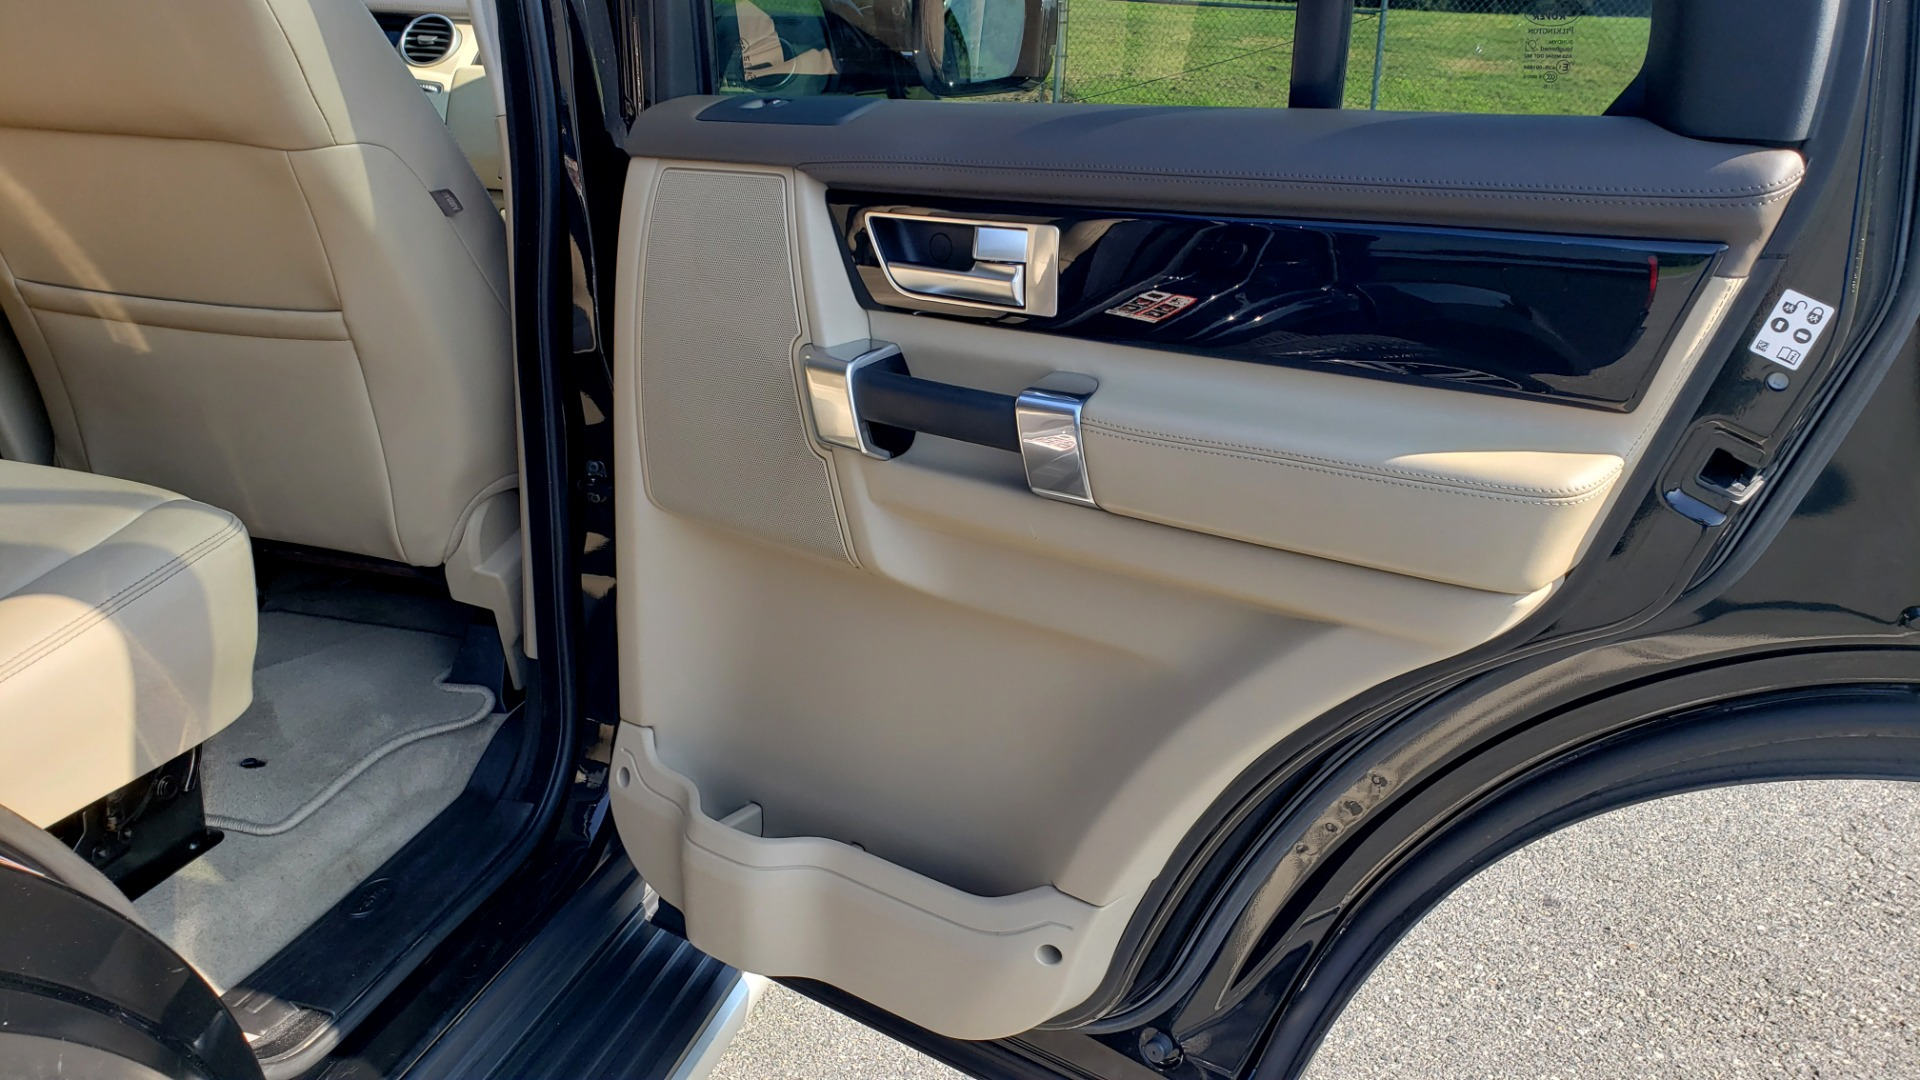 Used 2016 Land Rover LR4 HSE LUX LANDMARK EDITION / NAV / HTD STS / SUNROOF / REARVIEW for sale Sold at Formula Imports in Charlotte NC 28227 69